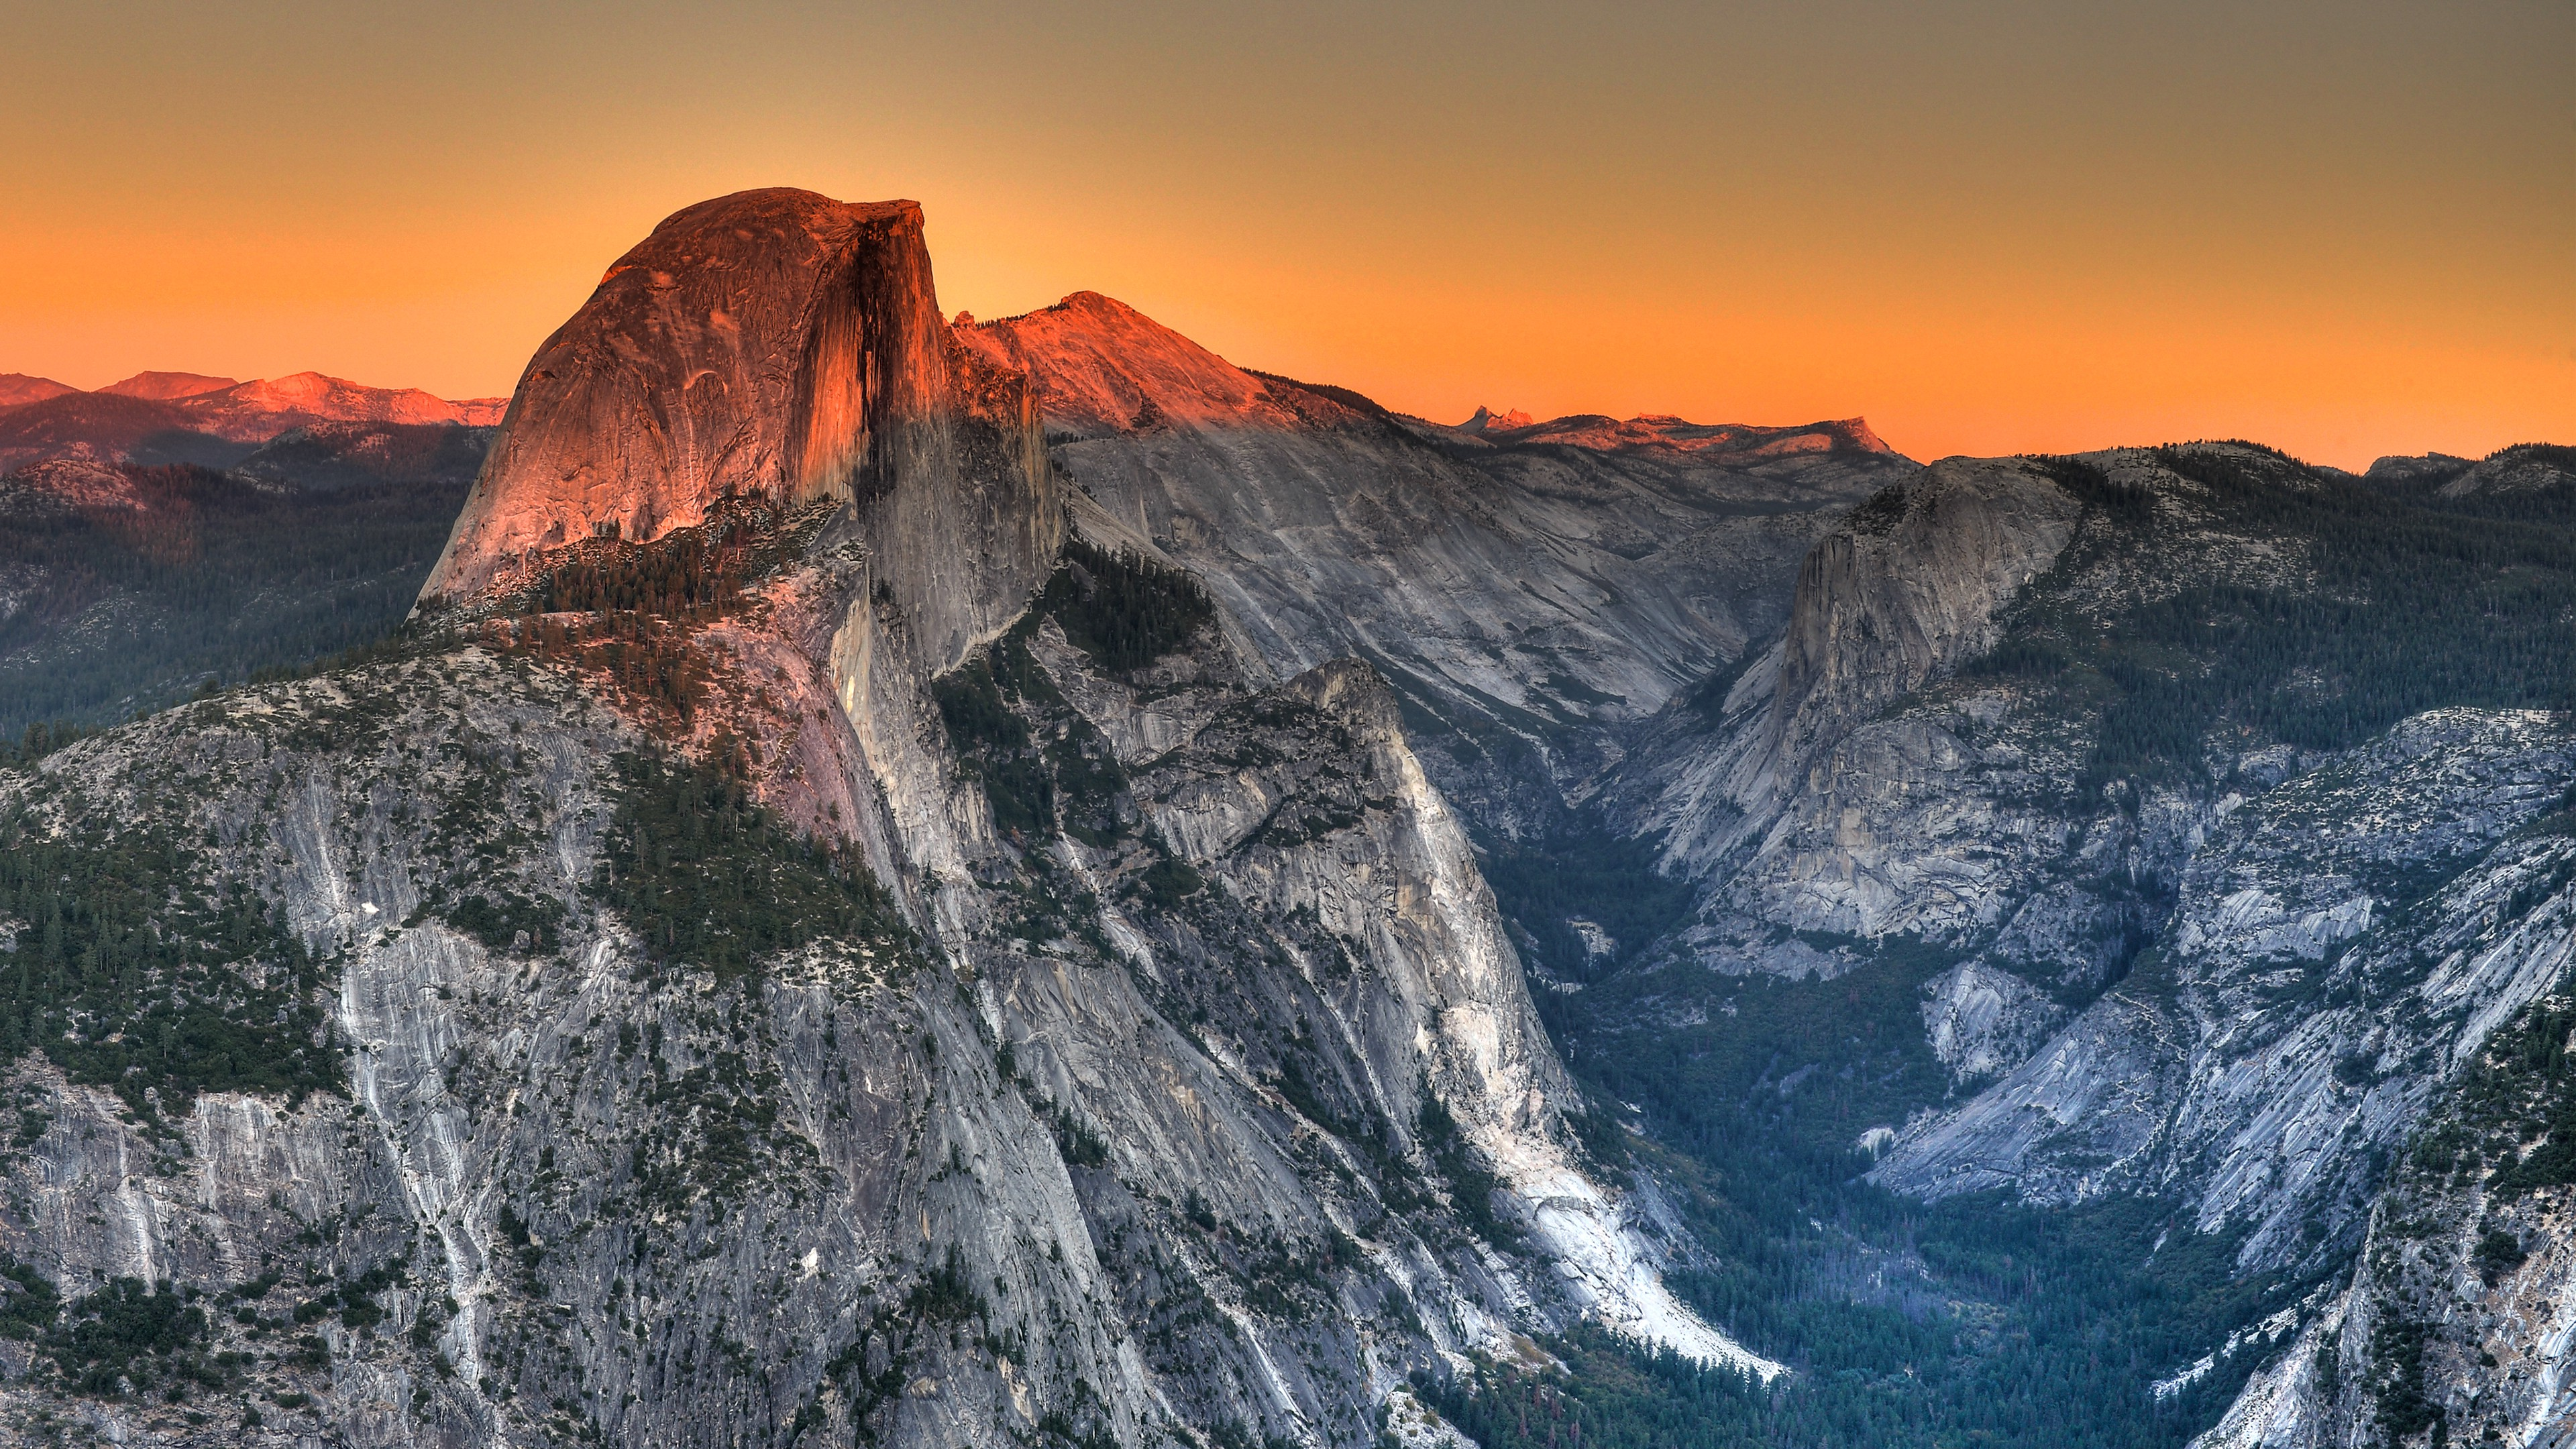 Hd wallpaper yosemite - Yosemite National Park Landscape Wallpapers Hd